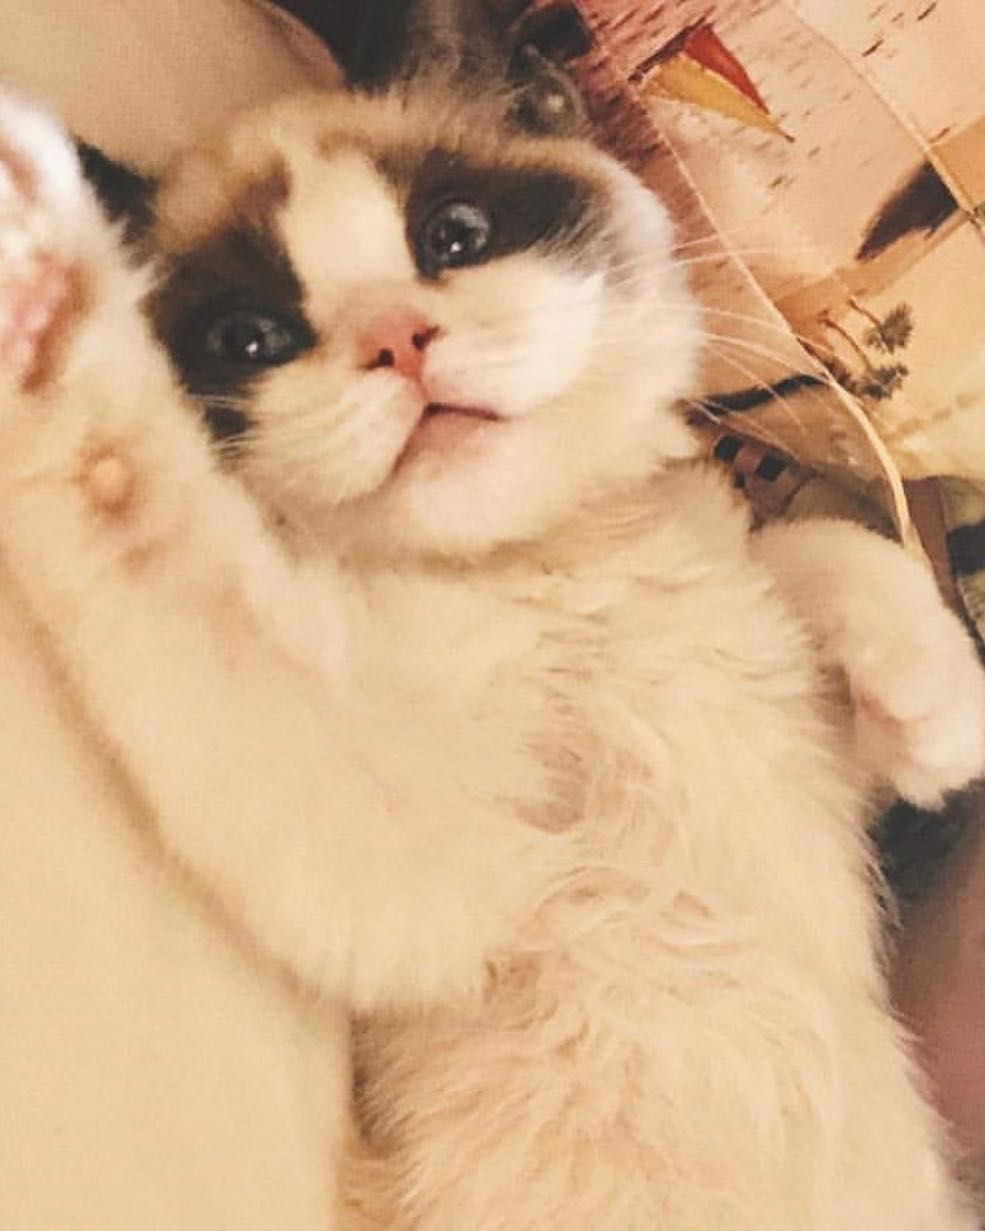 If Humans Could Birth Pets This Would Come Out Of Taylor For Sure Most Beautiful Eyes Omg Such A Soft Looking Cre Taylor Swift Cat Taylor Cute Cats